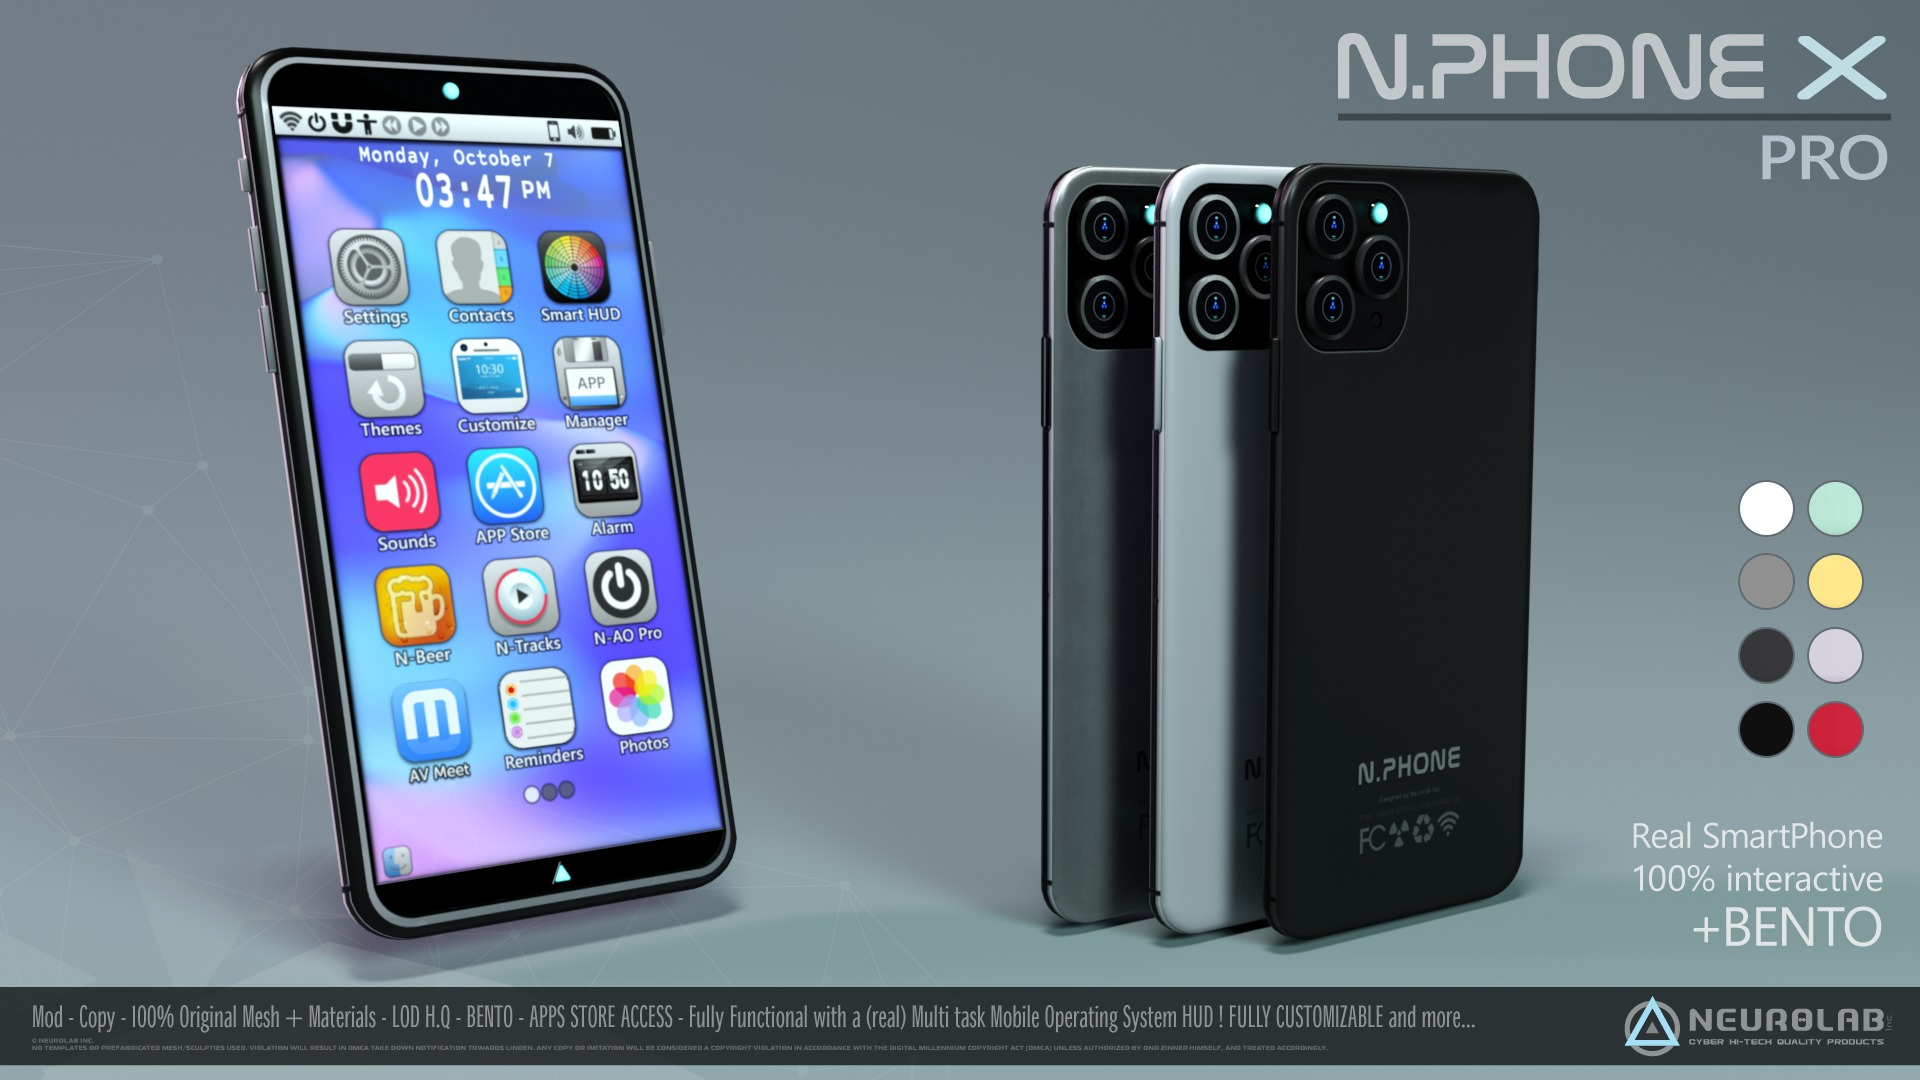 N.PHONE X PRO (Real SmartPhone with AIO HUD) *NEW*